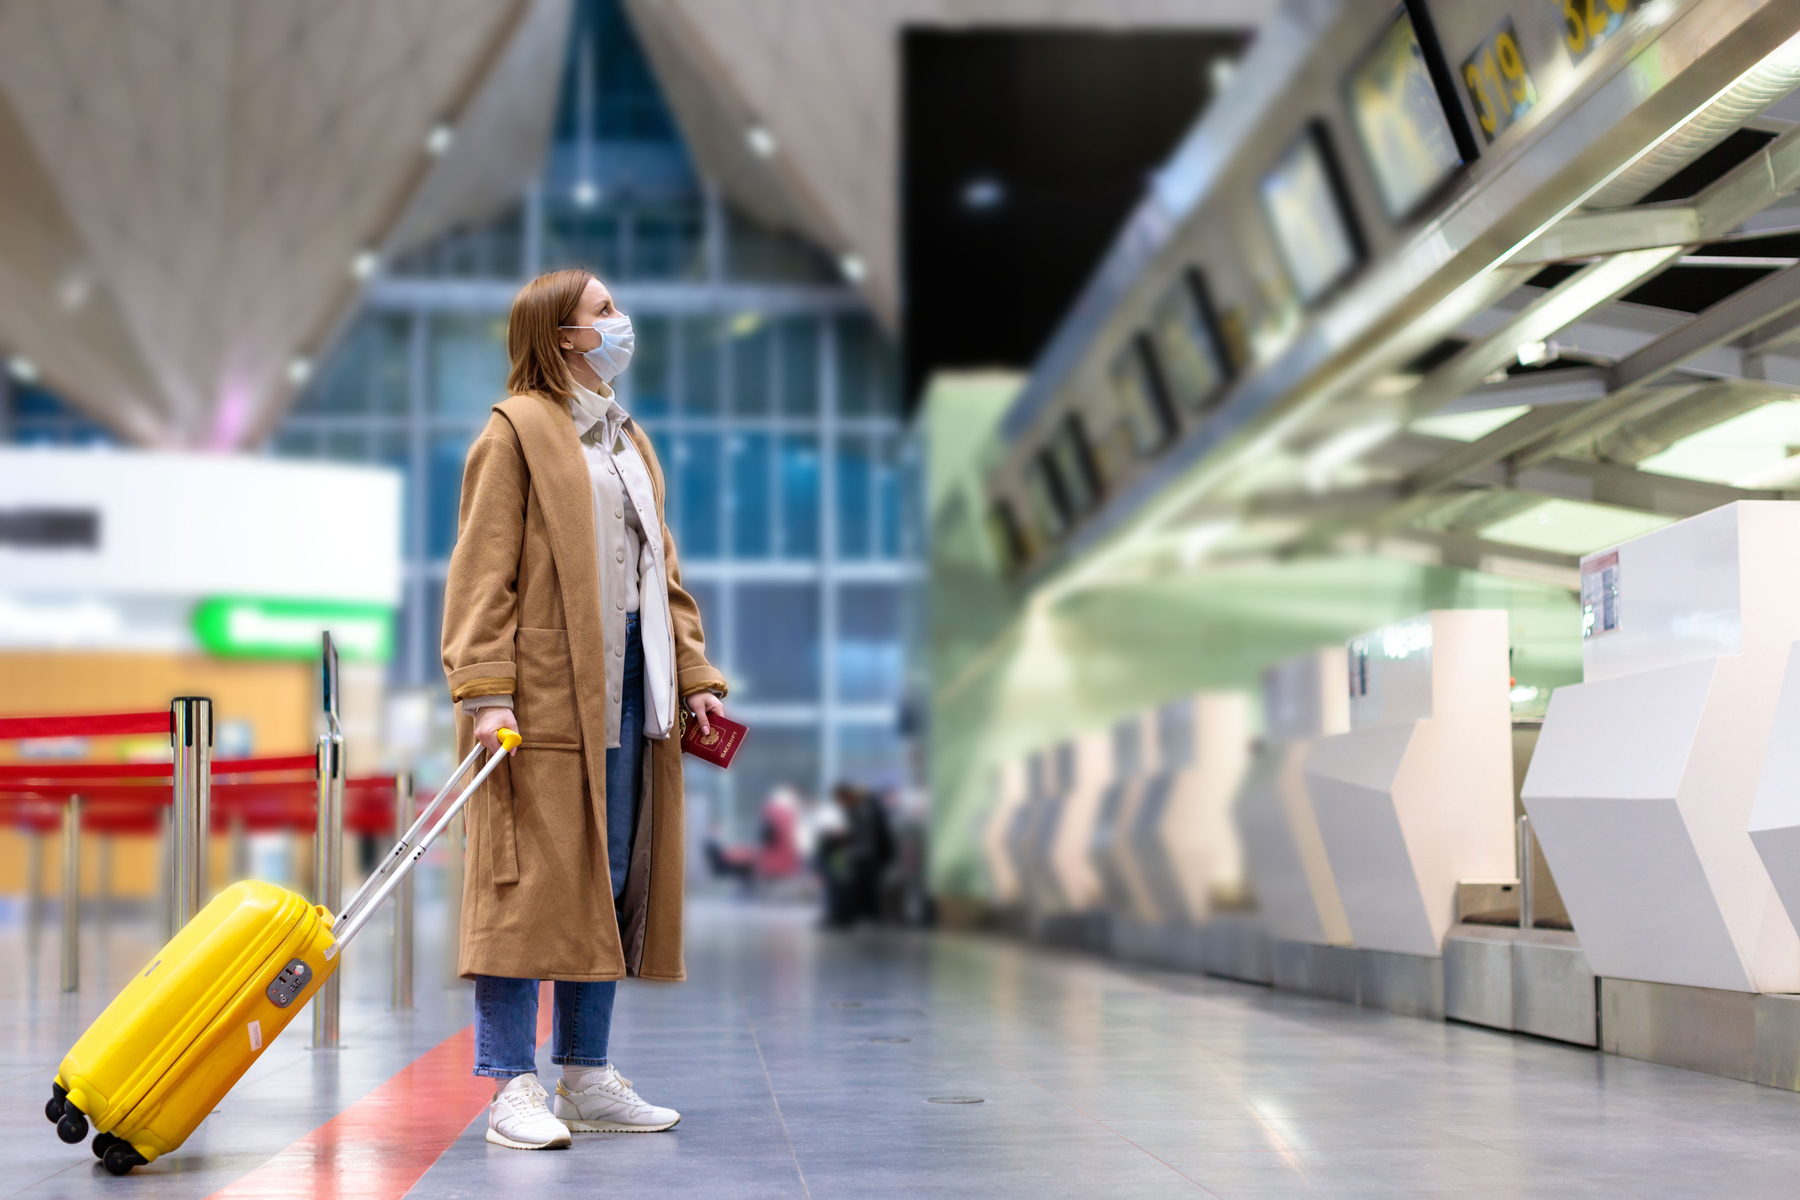 UNWTO: International tourist numbers down 65% in 2020